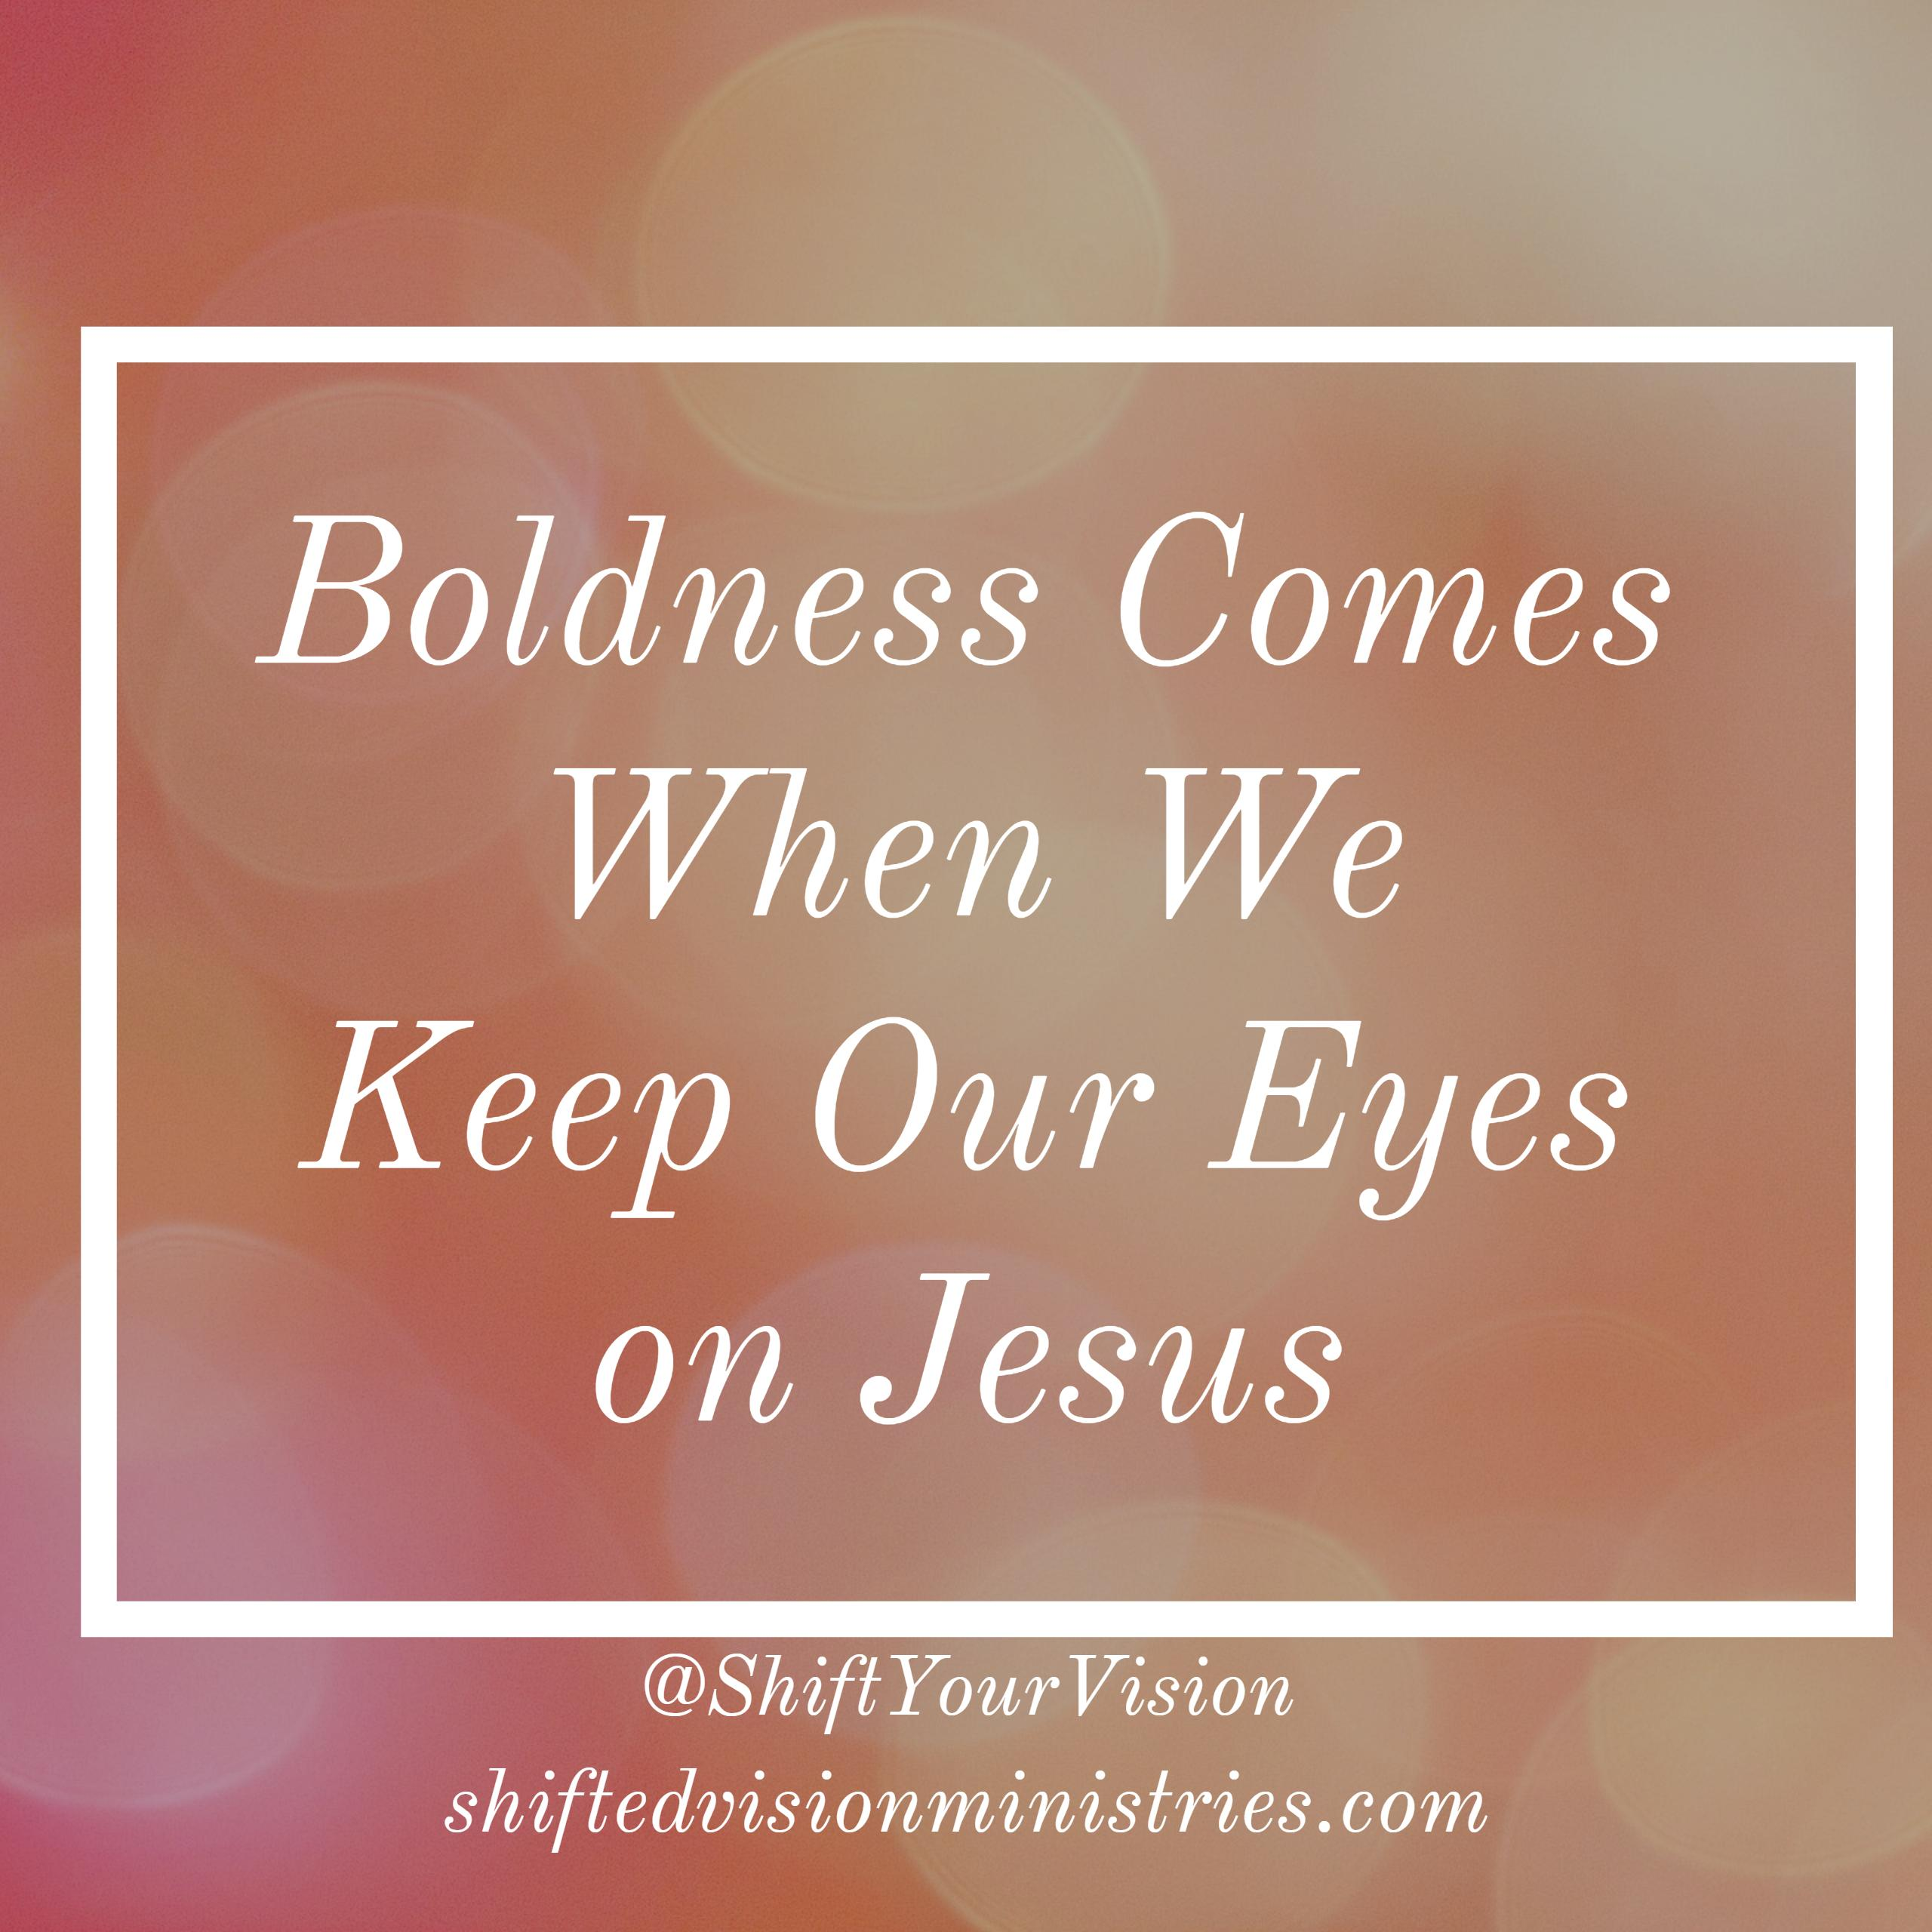 Boldness Comes when we Keep Our Eyes on Jesus, not the Fire